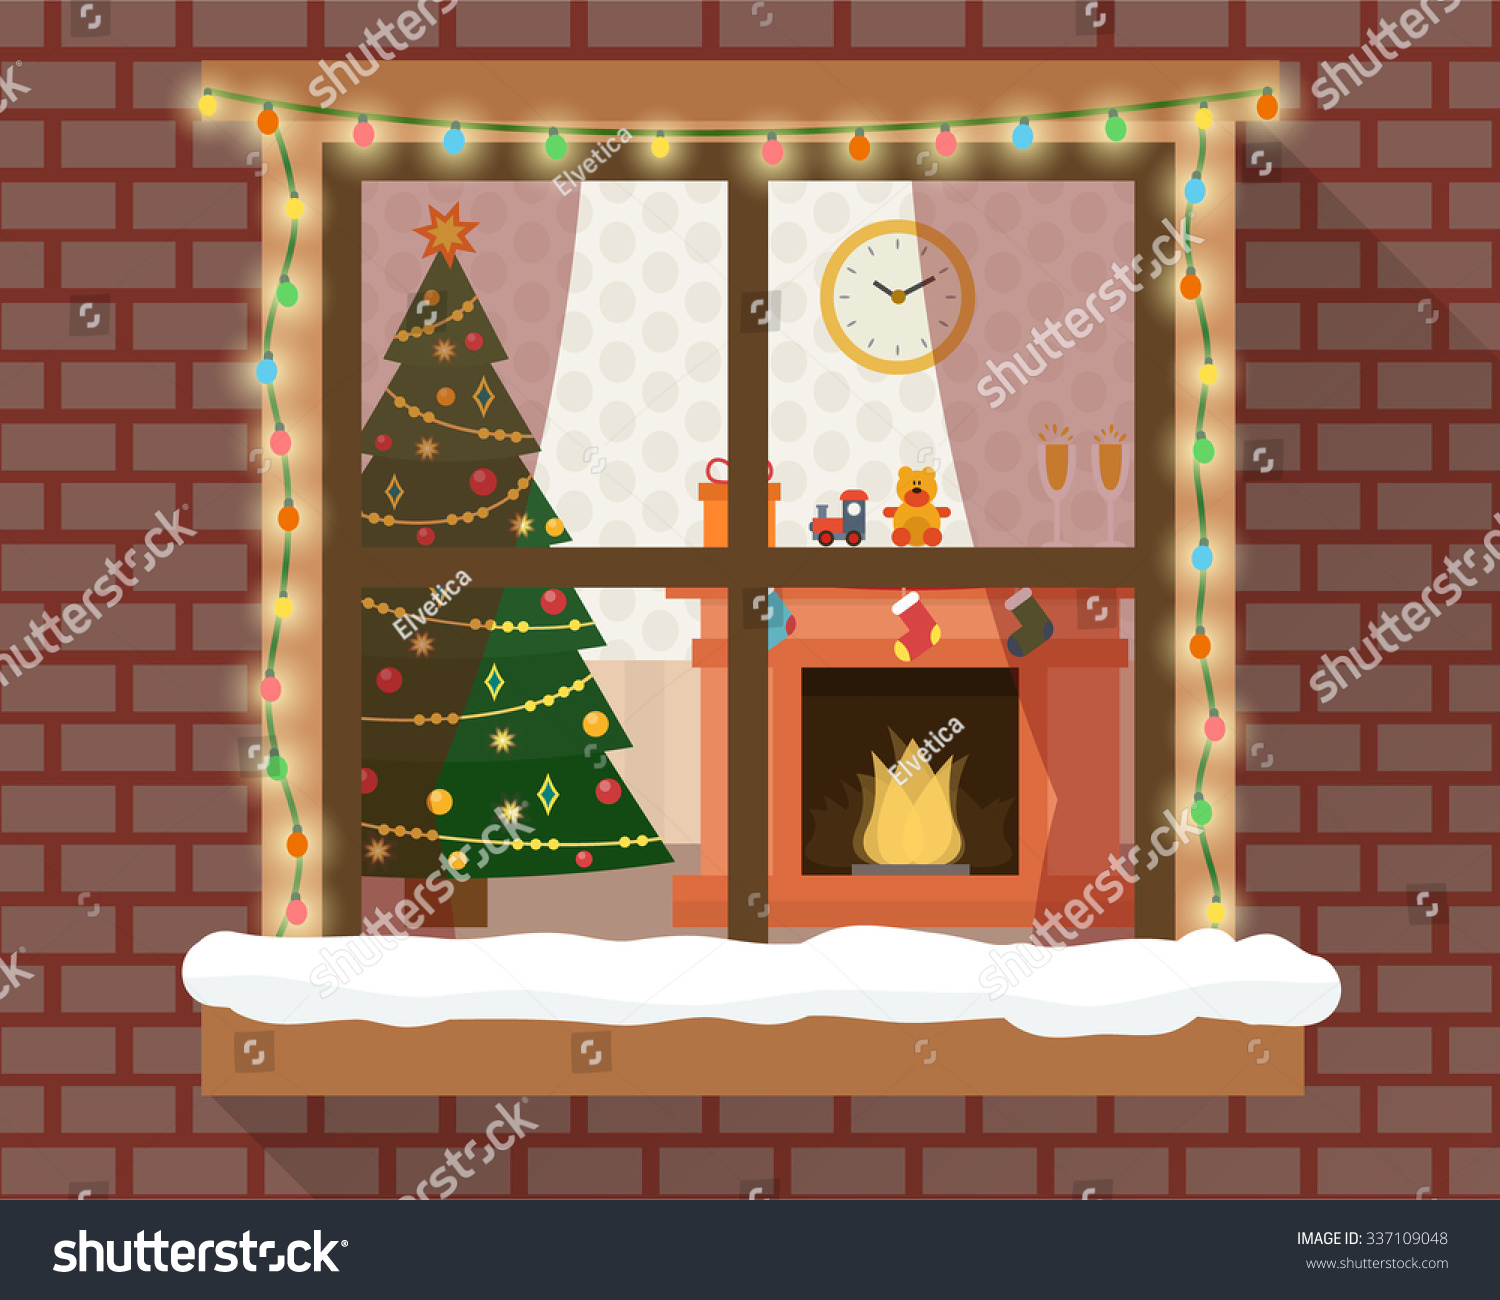 Christmas Room Furniture Christmas Tree Fireplace Stock